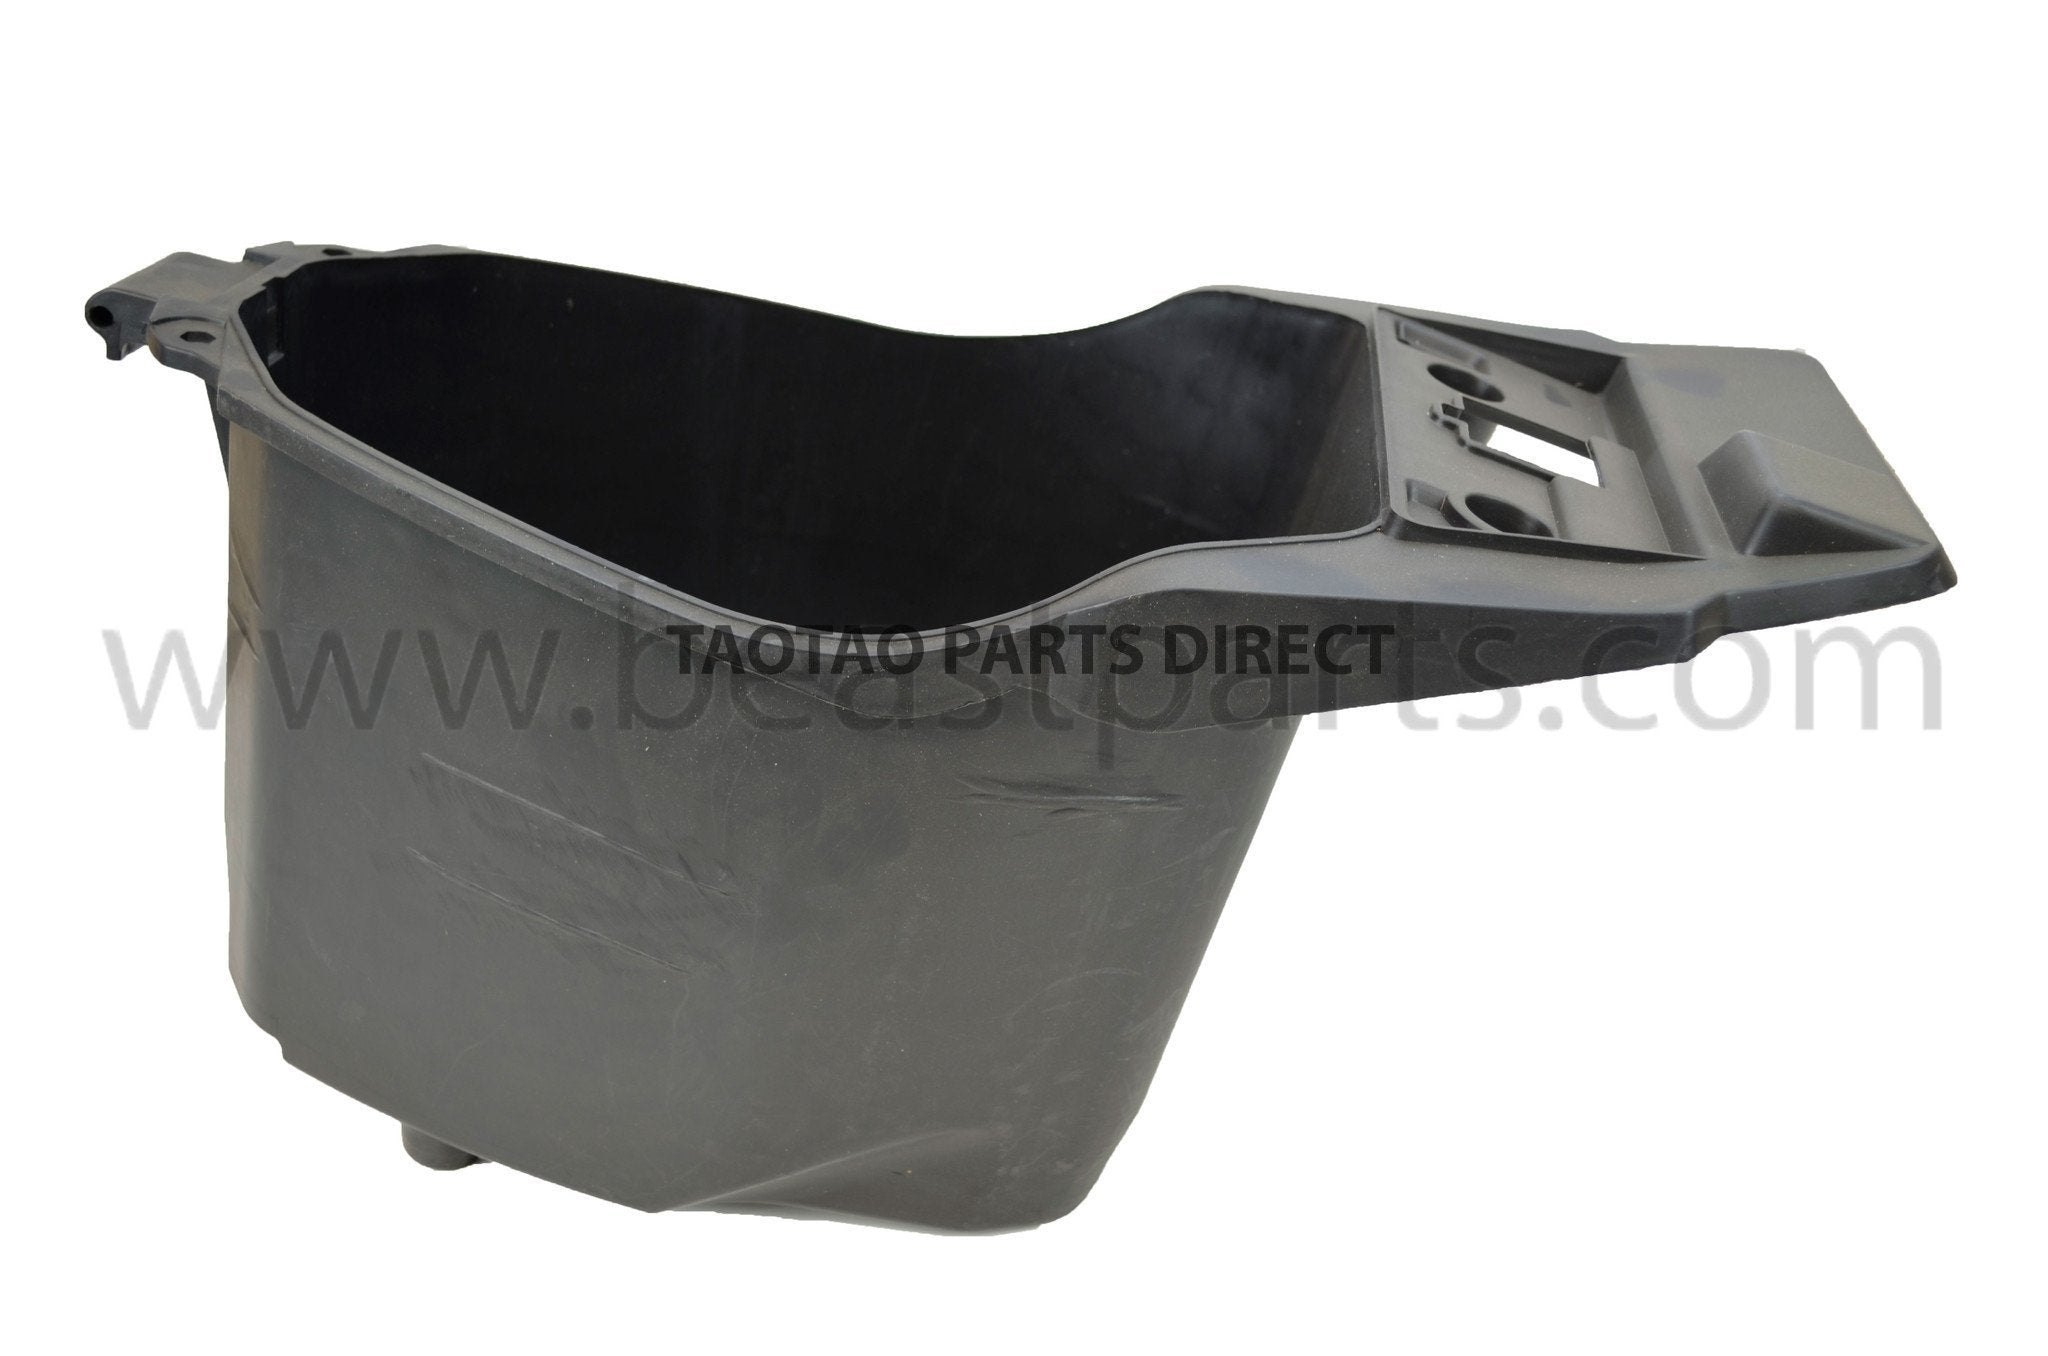 Scooter Parts - Thunder 50 Under Seat Storage Bin